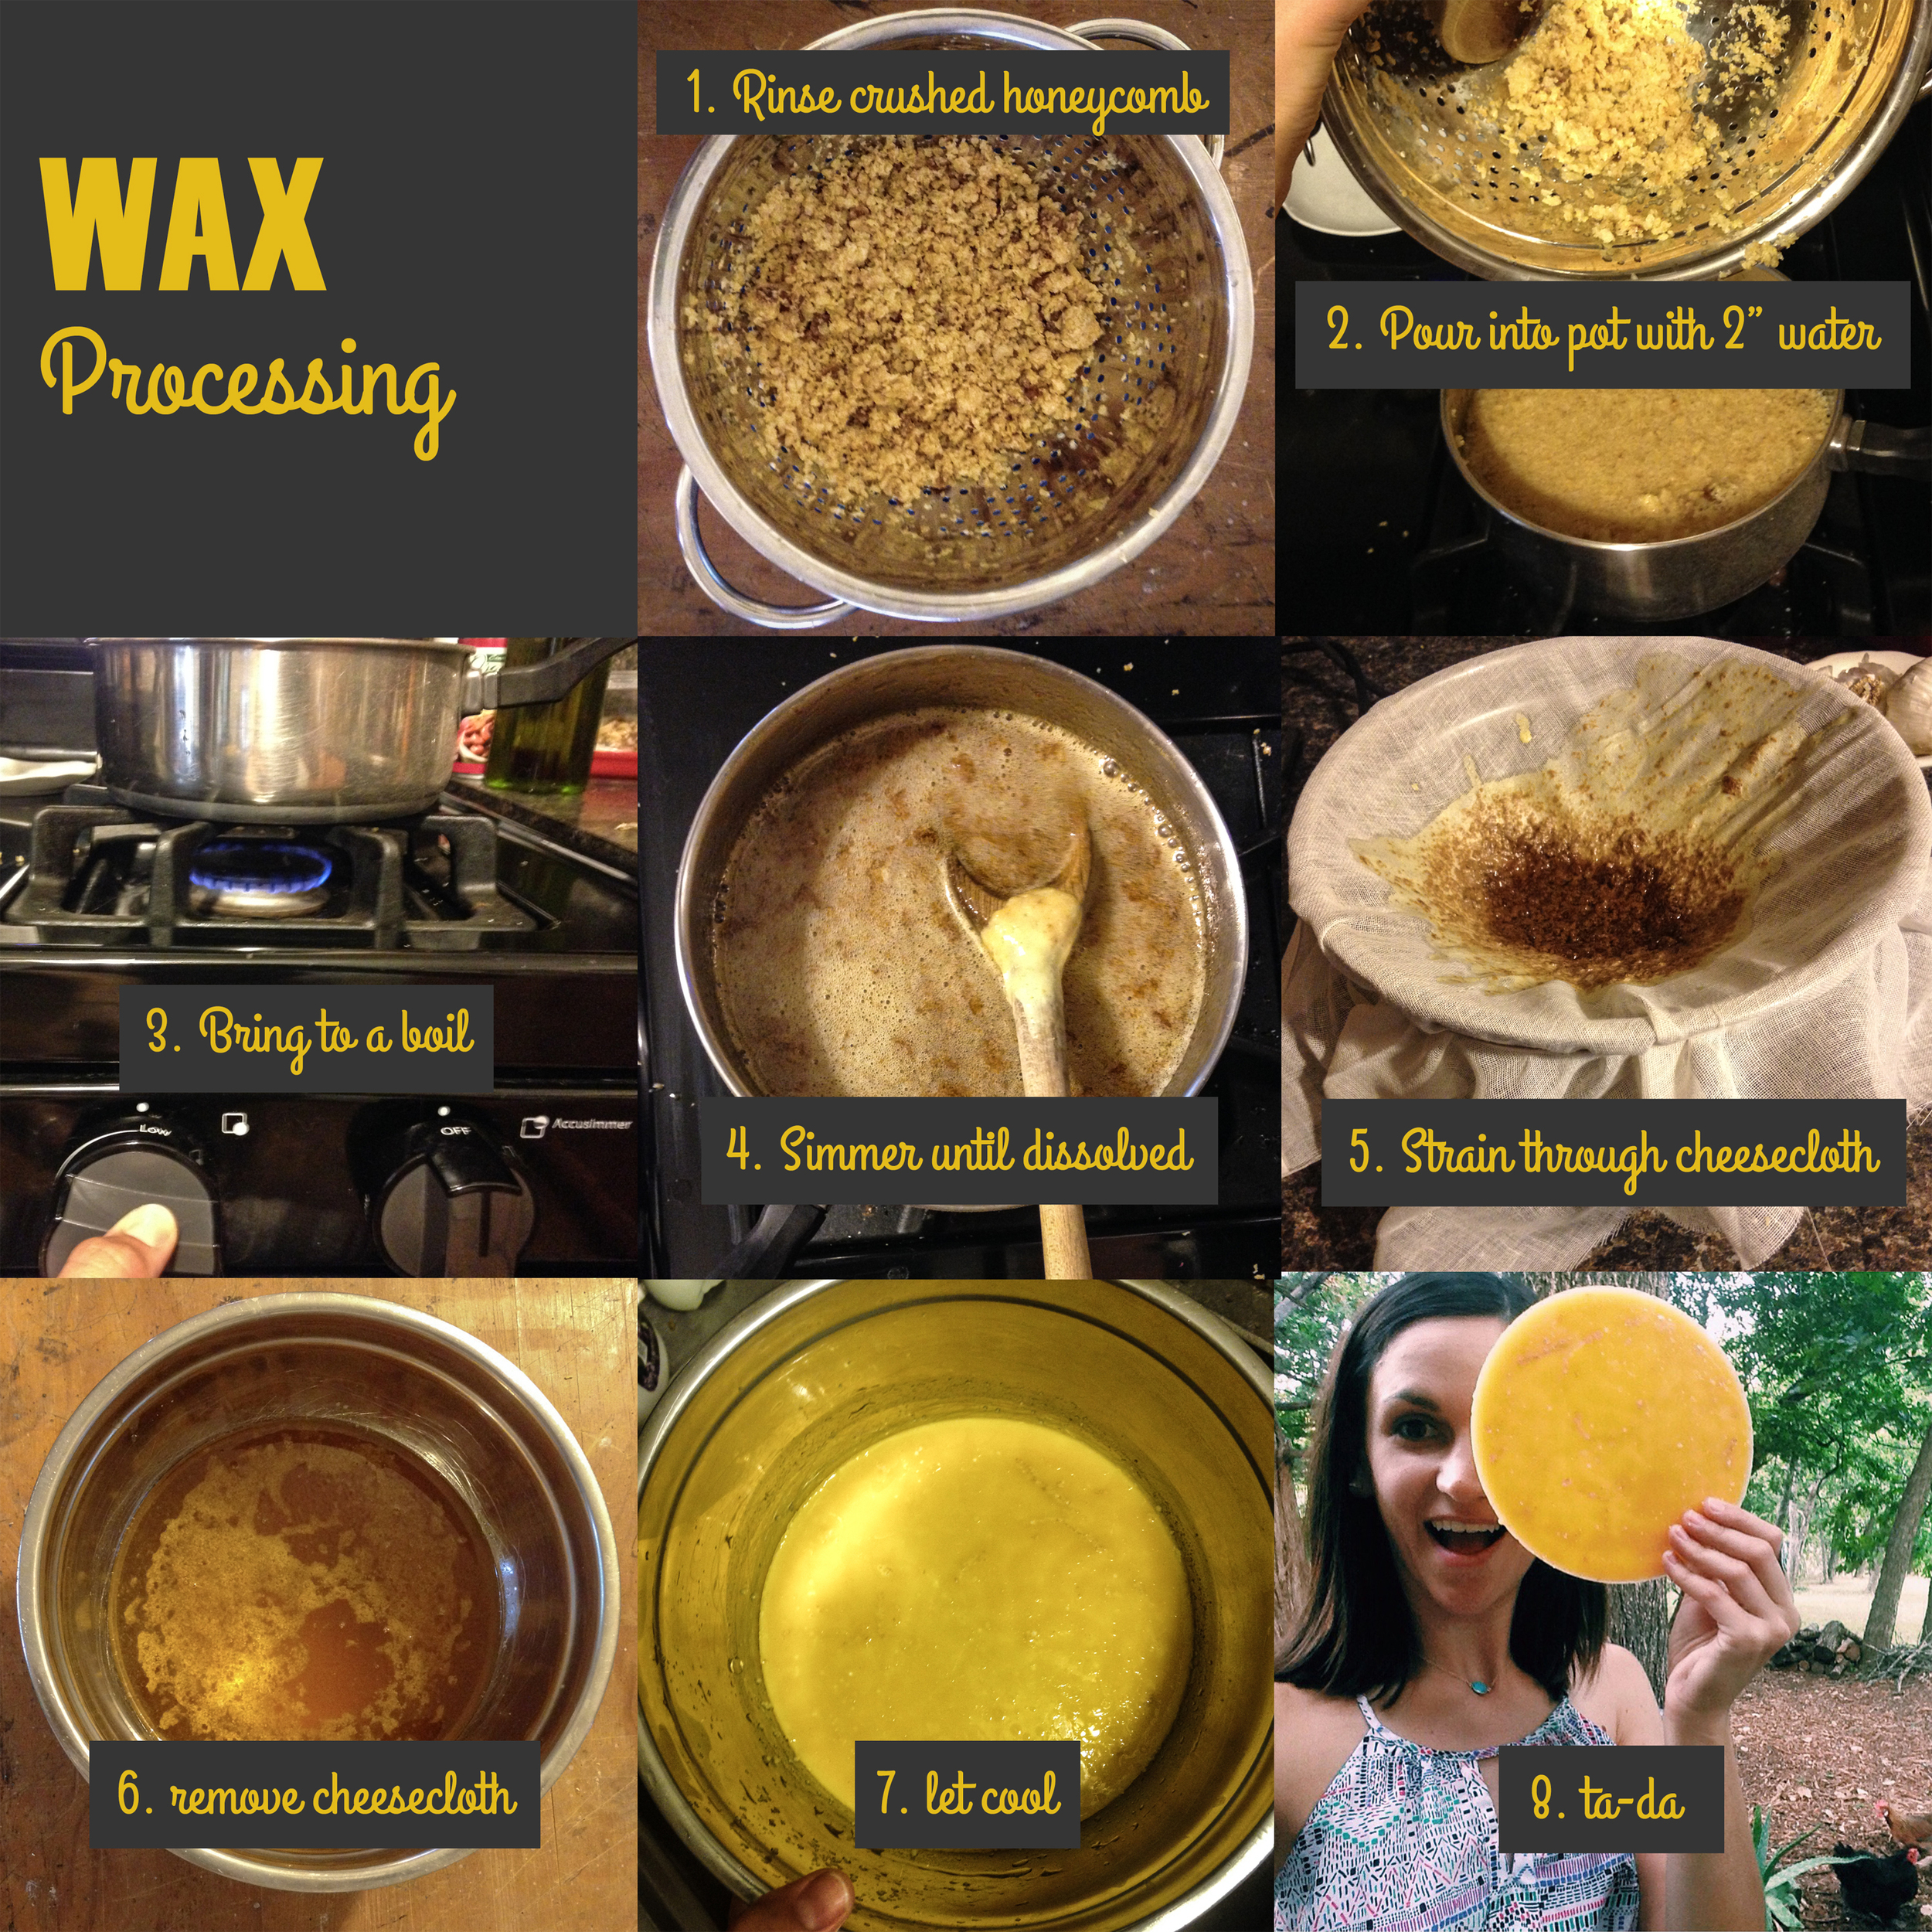 wax_processing_graphic.jpg